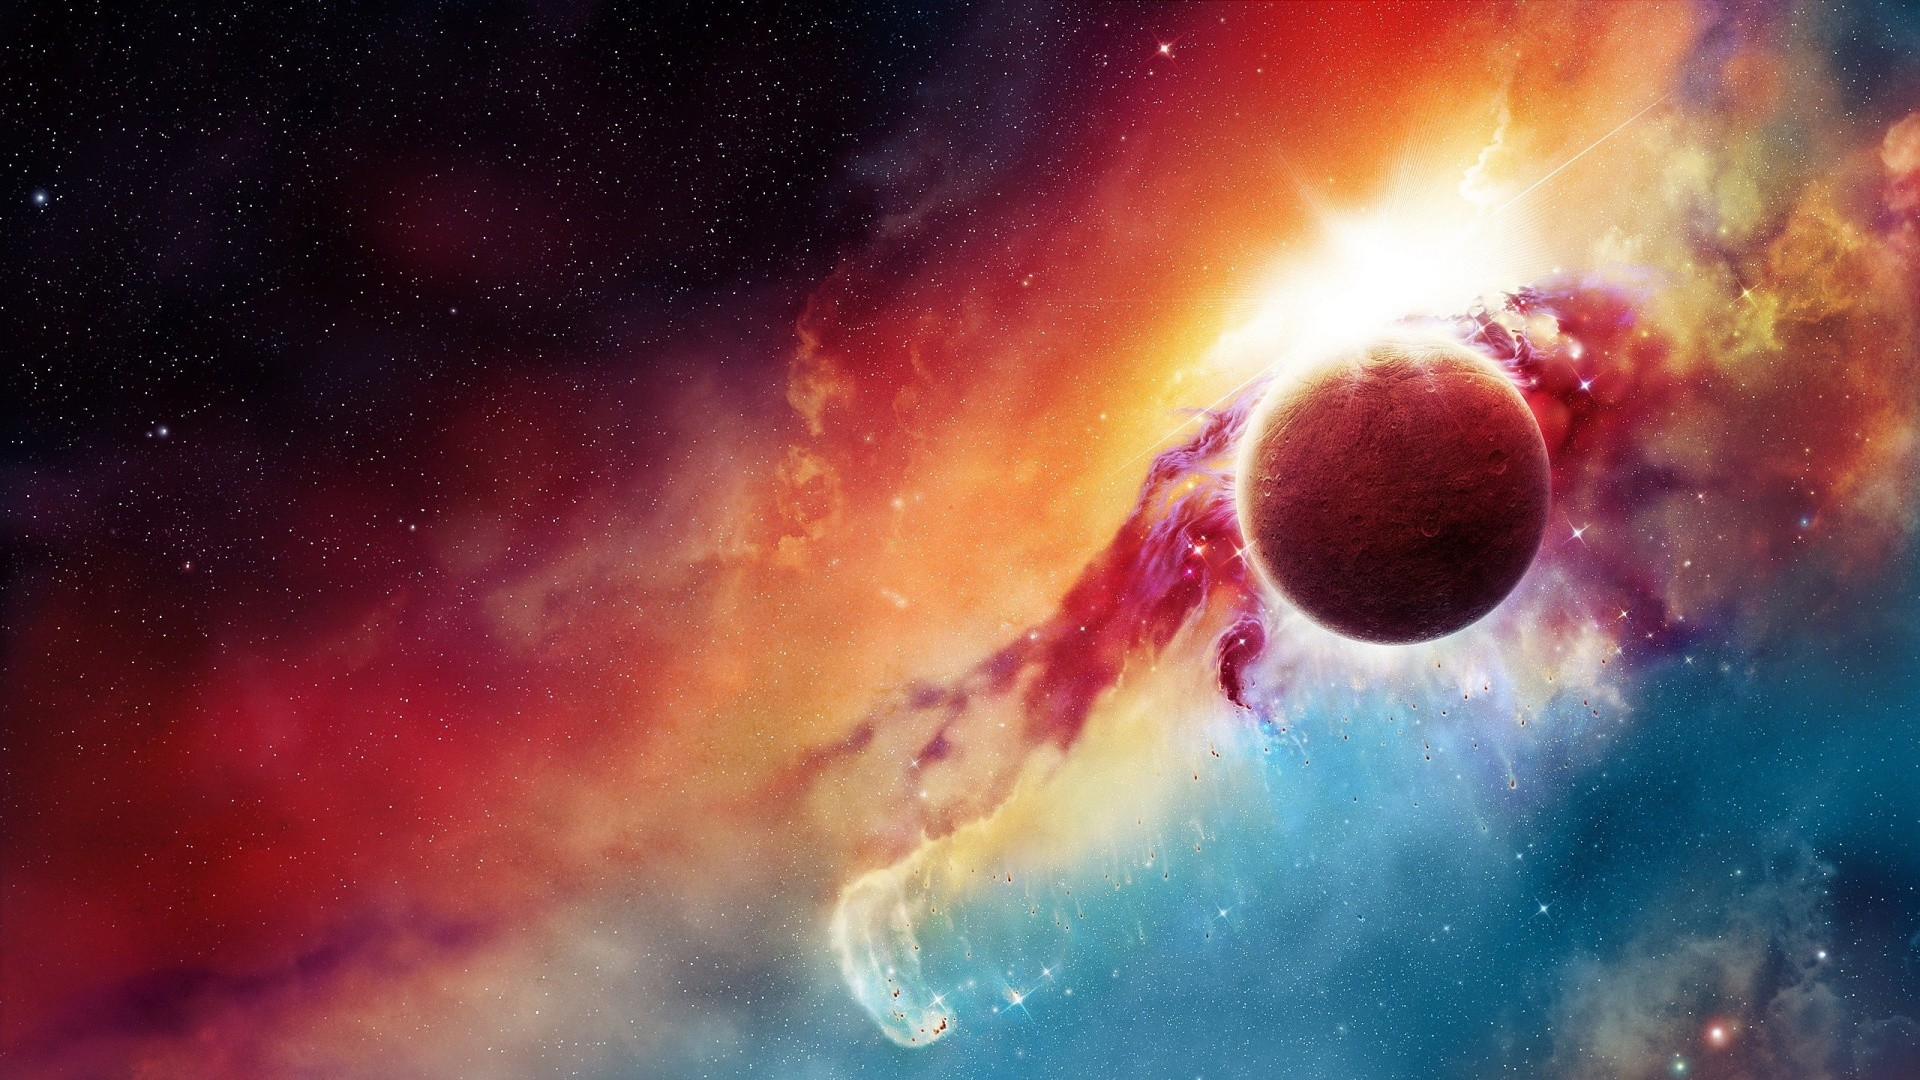 Space Wallpapers : Get Free top quality Space .